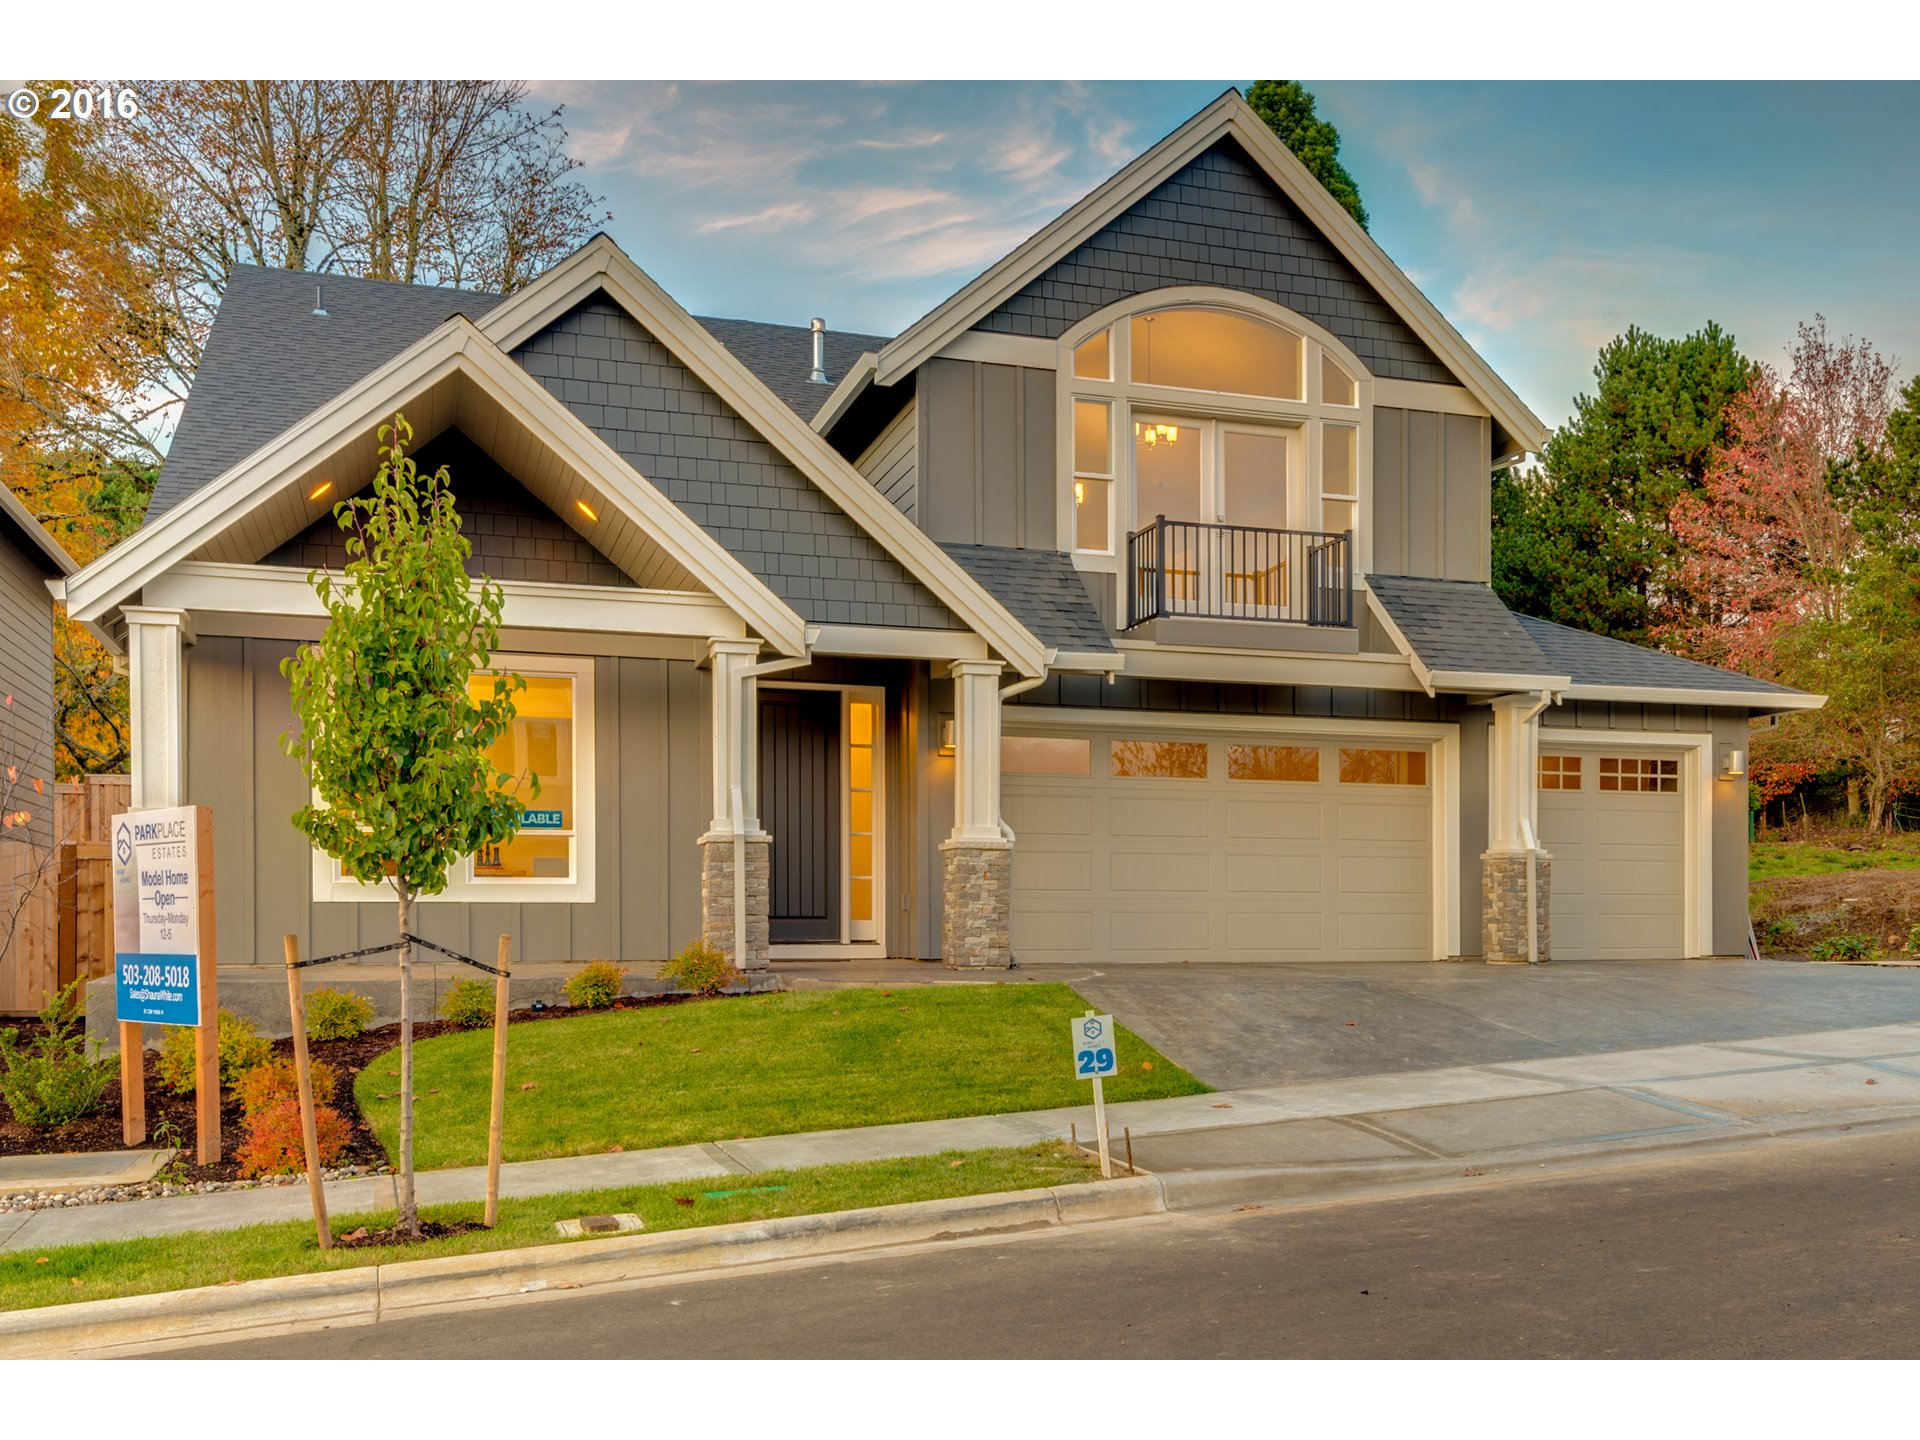 2963 sq. ft 4 bedrooms 2 bathrooms  House For Sale,Portland, OR